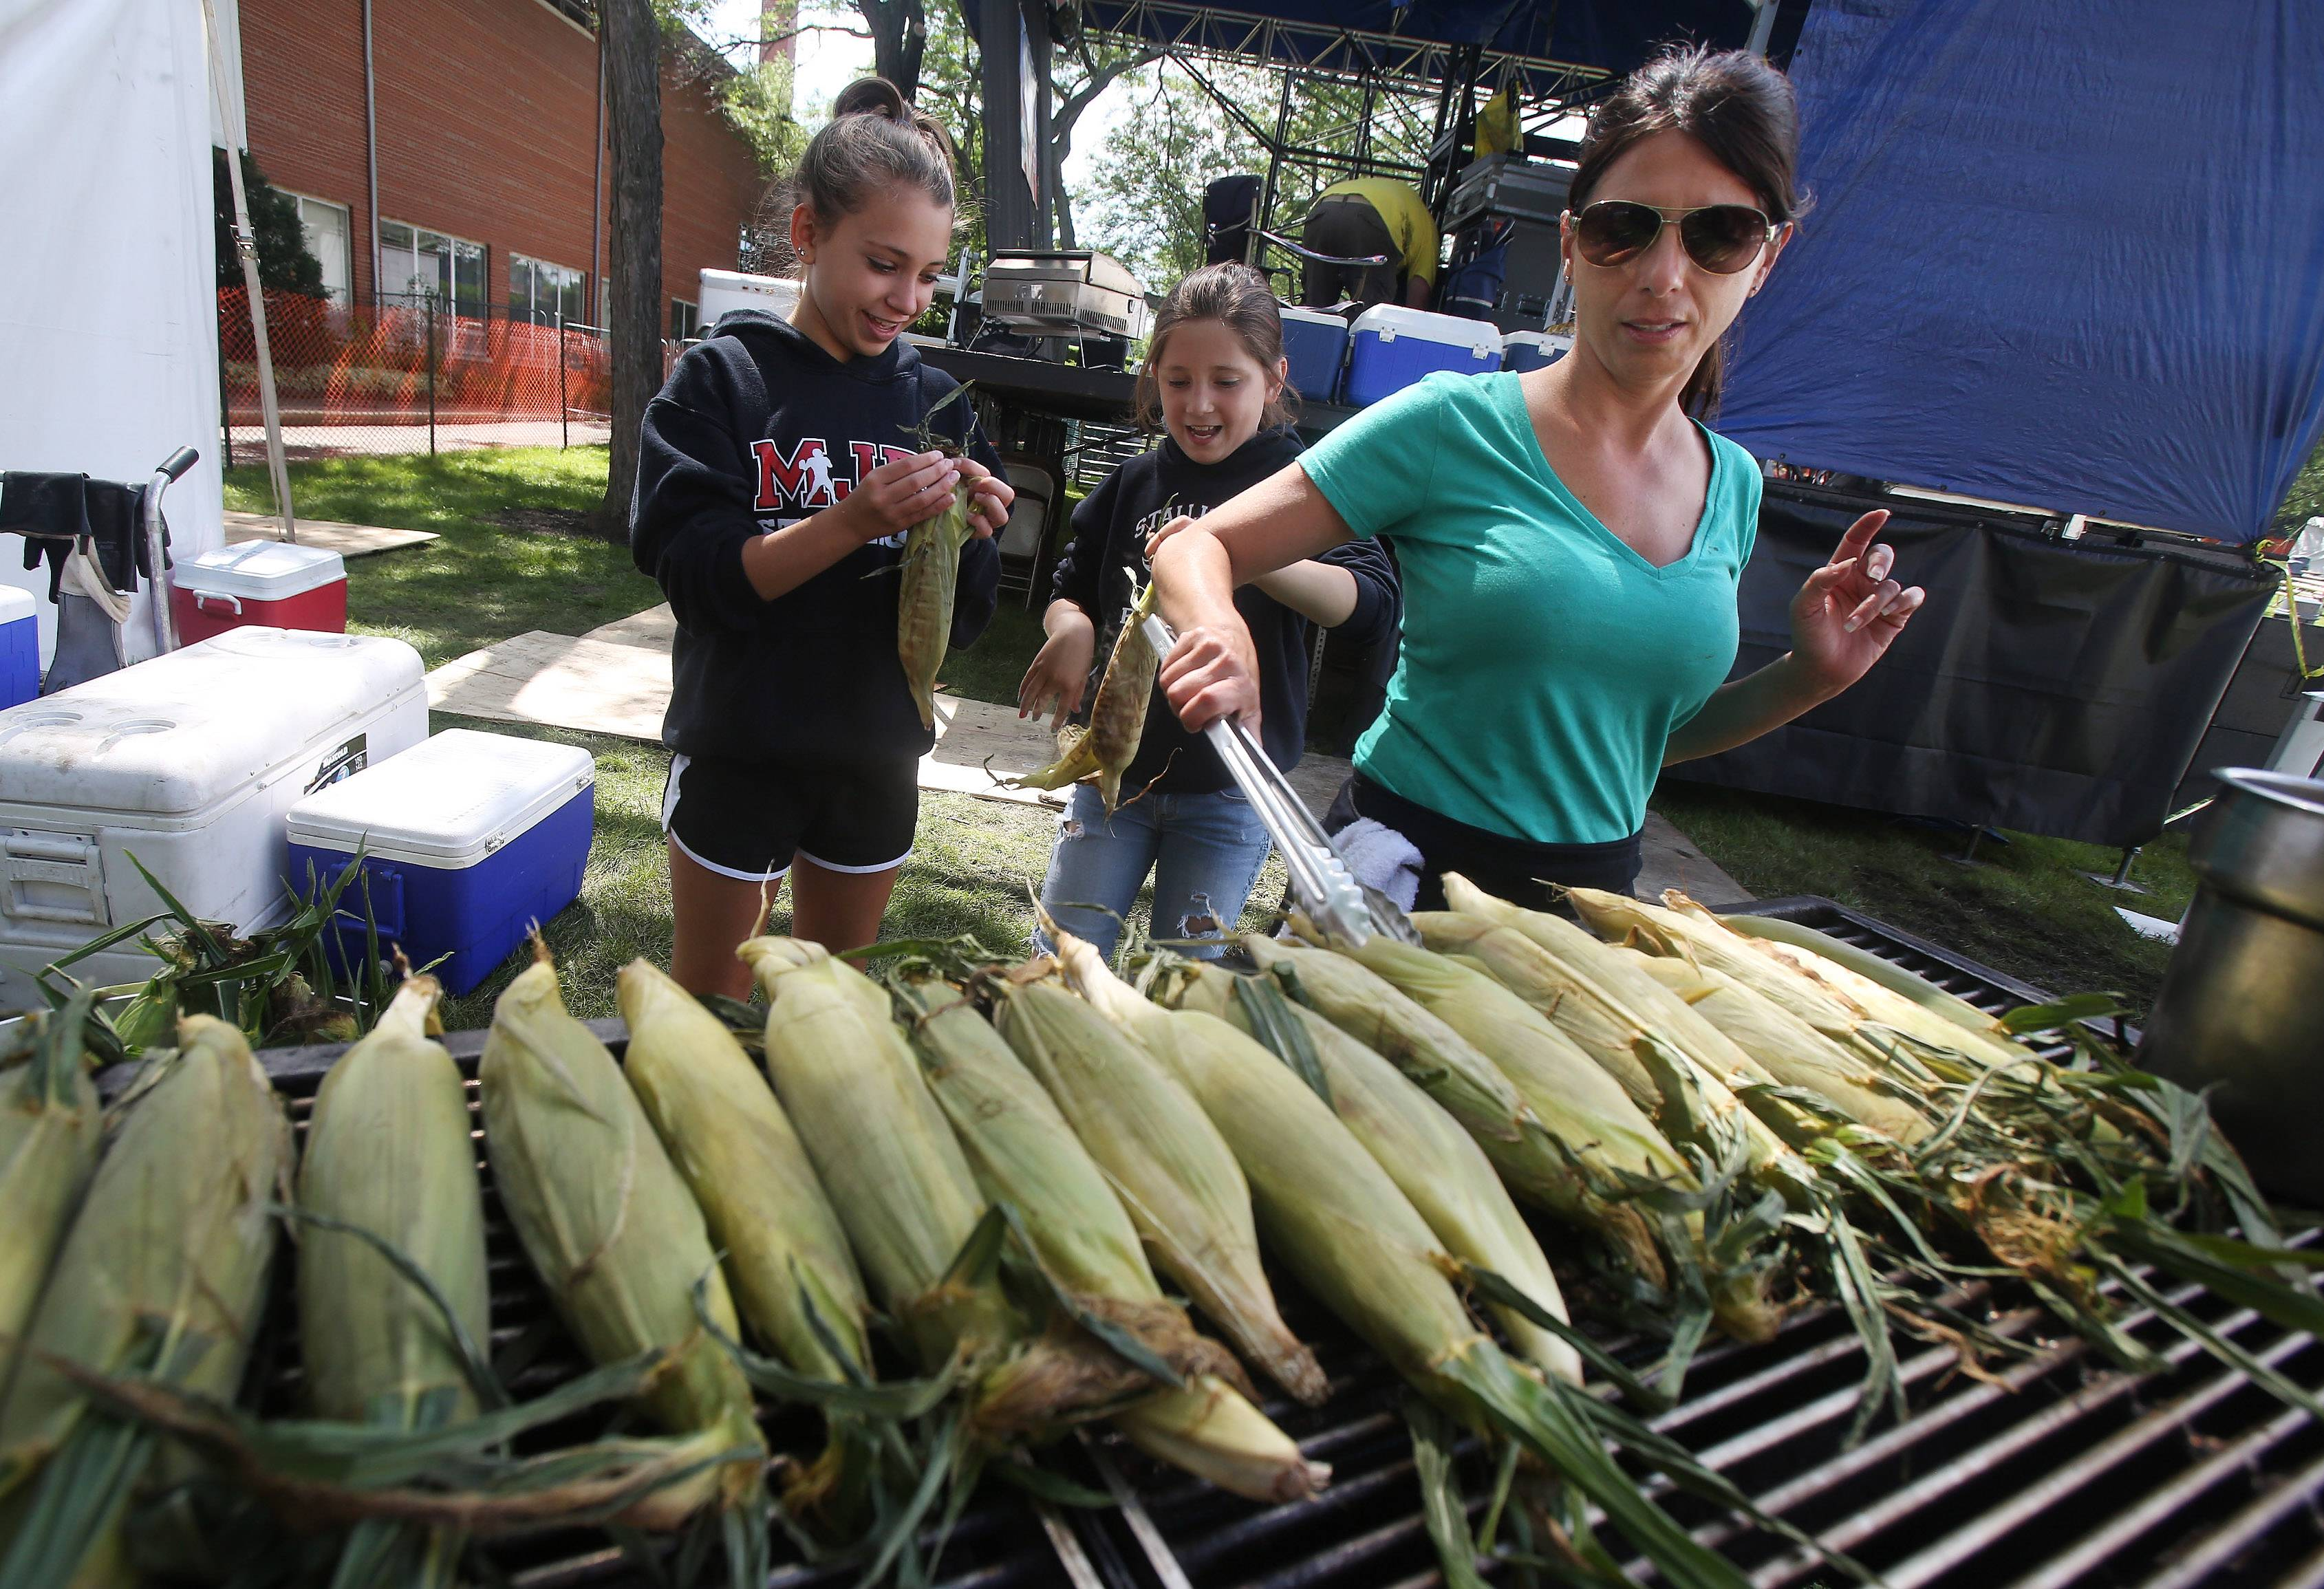 Michelle Coutre of Mundelein roasts corn with her daughters, Lily, 10, and Olivia, 13, at the Brother's BBQ tent Thursday during the first day of Mundelein Community Days at Kracklauer Park. The festival runs through Sunday, featuring music, food tents, games, and carnival rides.